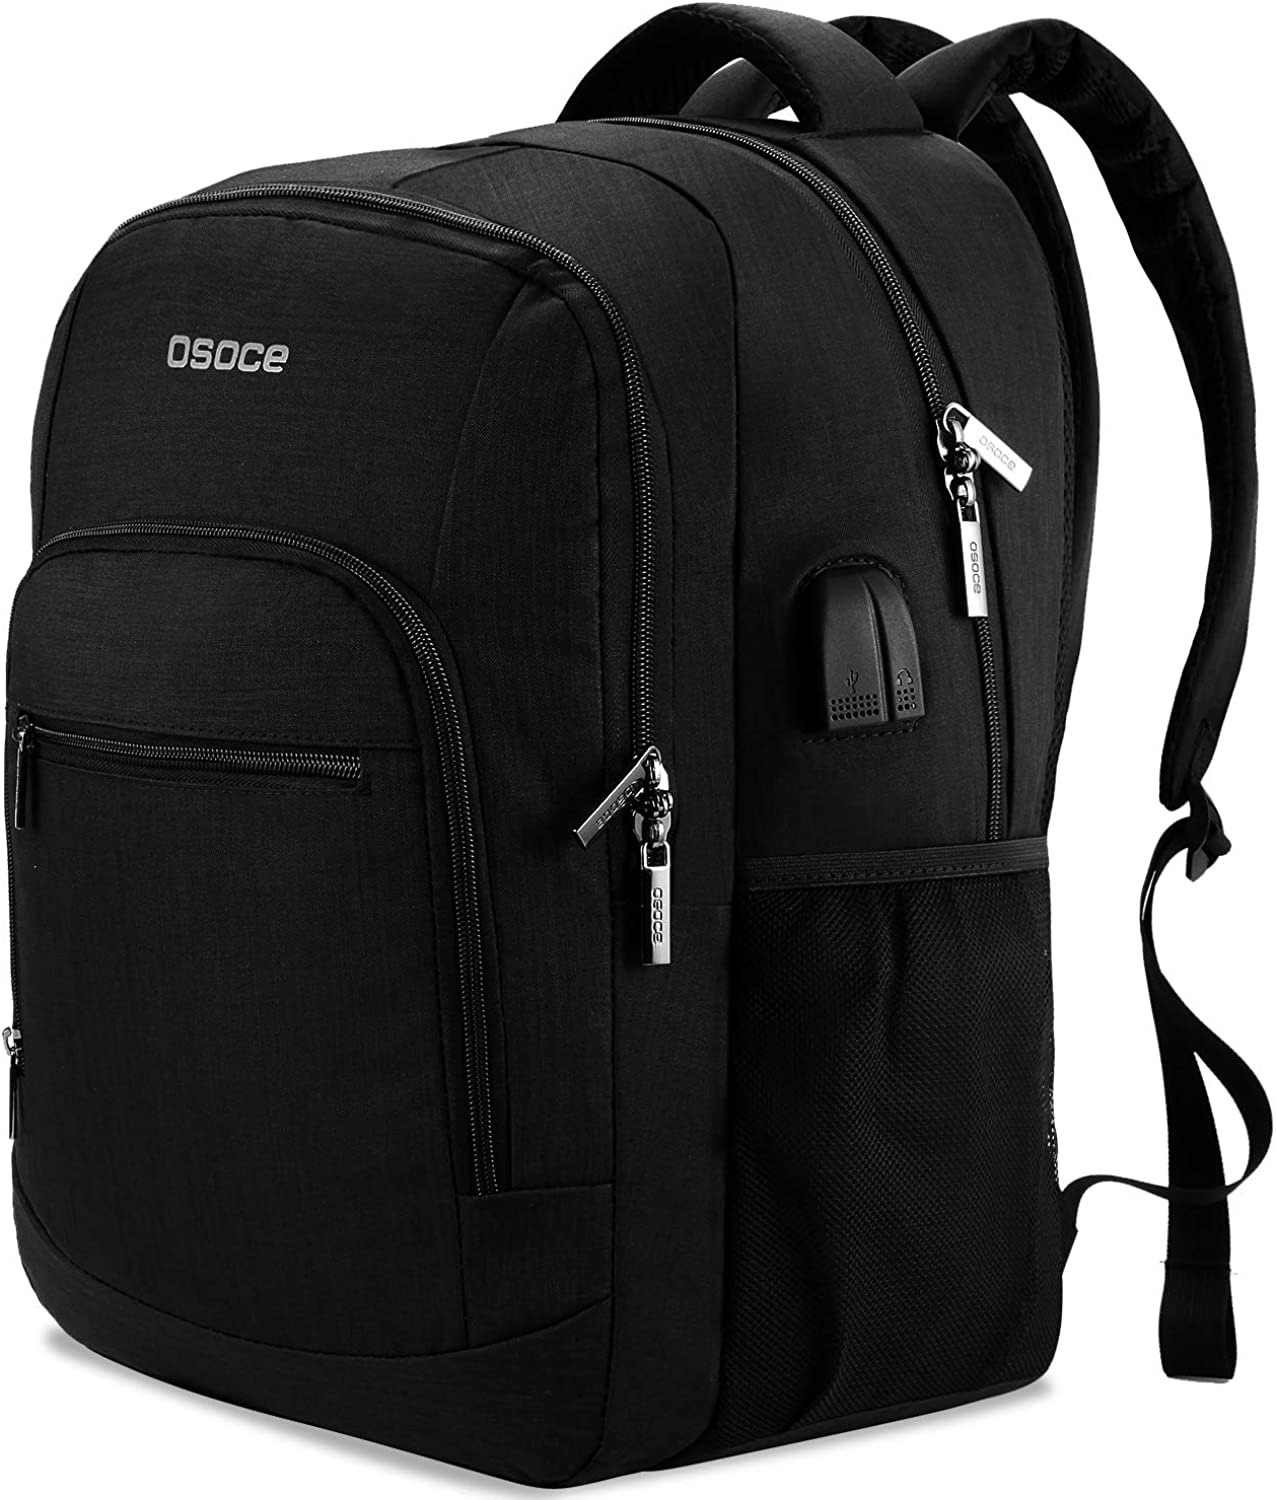 Travel Backpack With USB Charging Port, Waterproof Multi-Pocket Laptop Bags, College Computer Back Packs Fits 15.6-inch Notebooks for Men & Women